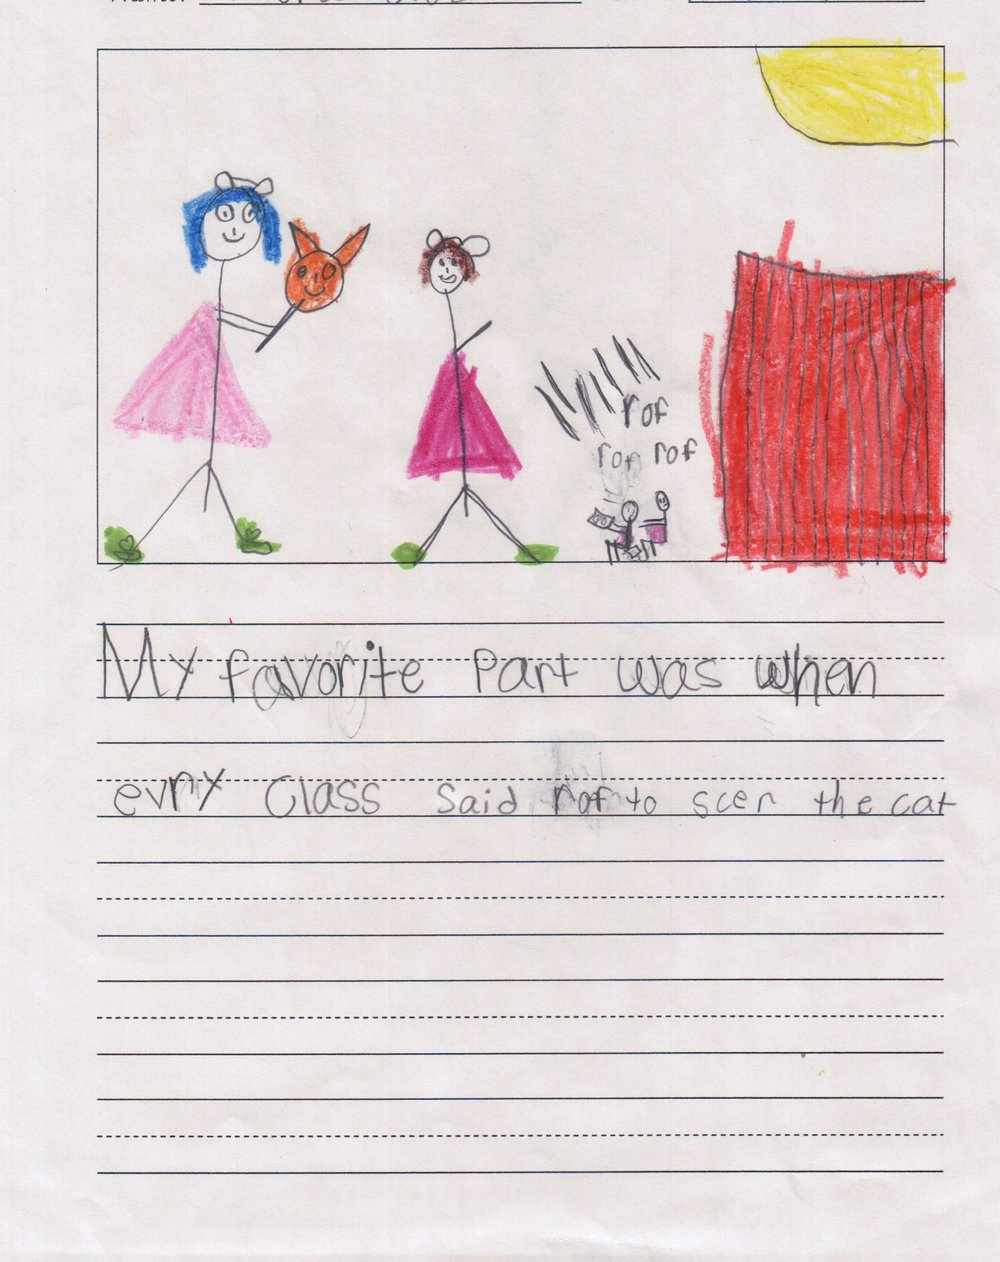 """My favorite part was when every class said ruff to scare the cat."" - A student from Scarborough Elementary/Houston ISD."